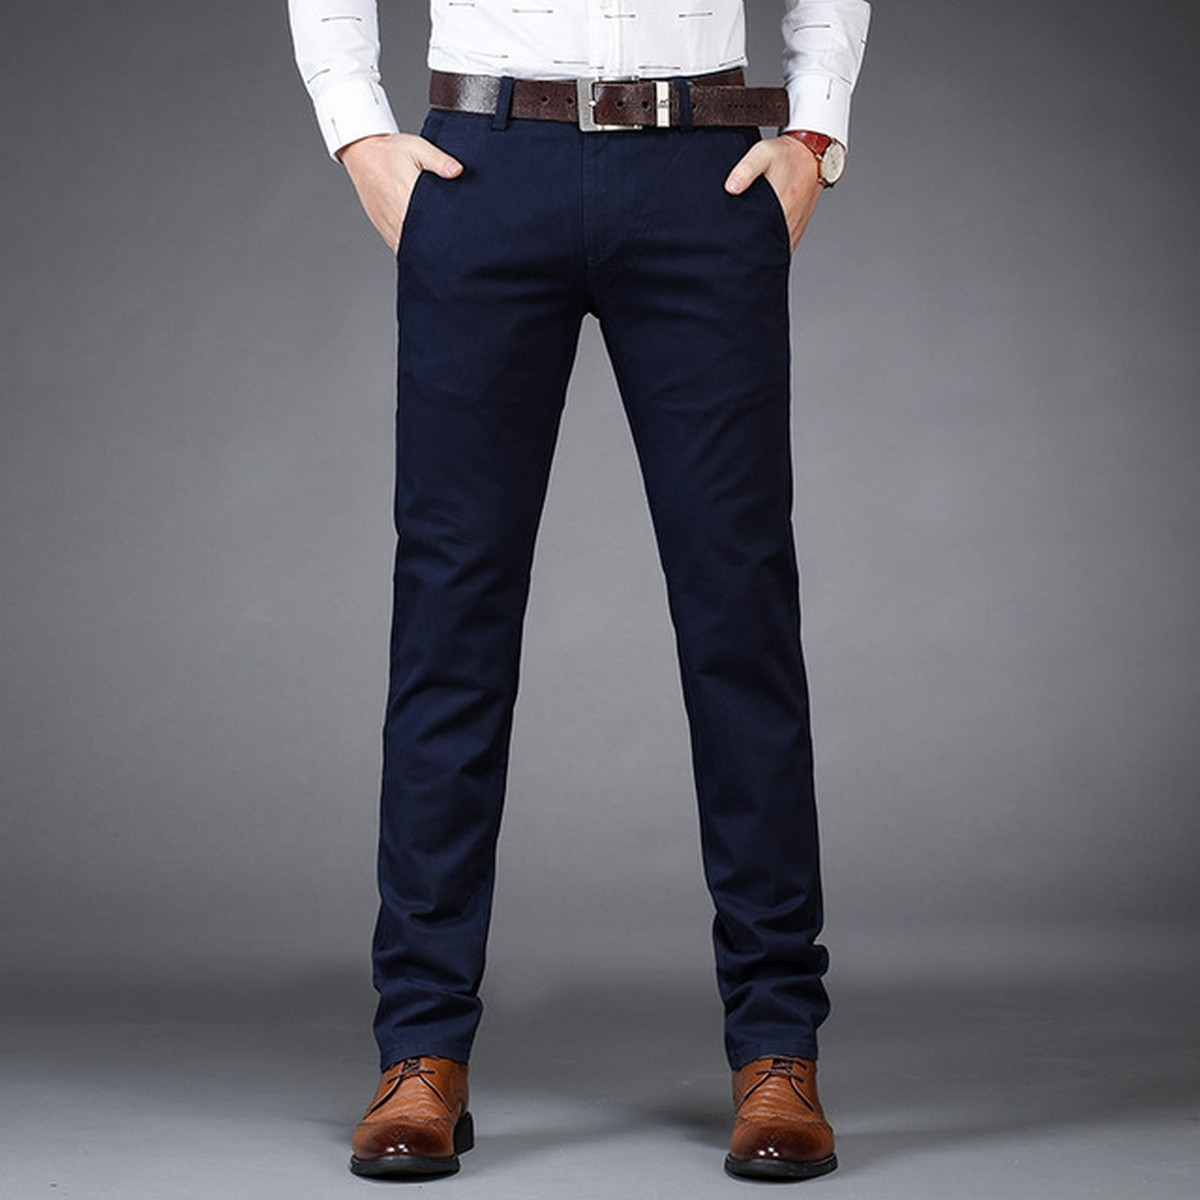 New Men's Casual Basic Pants Business Cotton Jeans Regular Straight Pocket Stretch Pants in Navy Blue Color  Trending Fashion